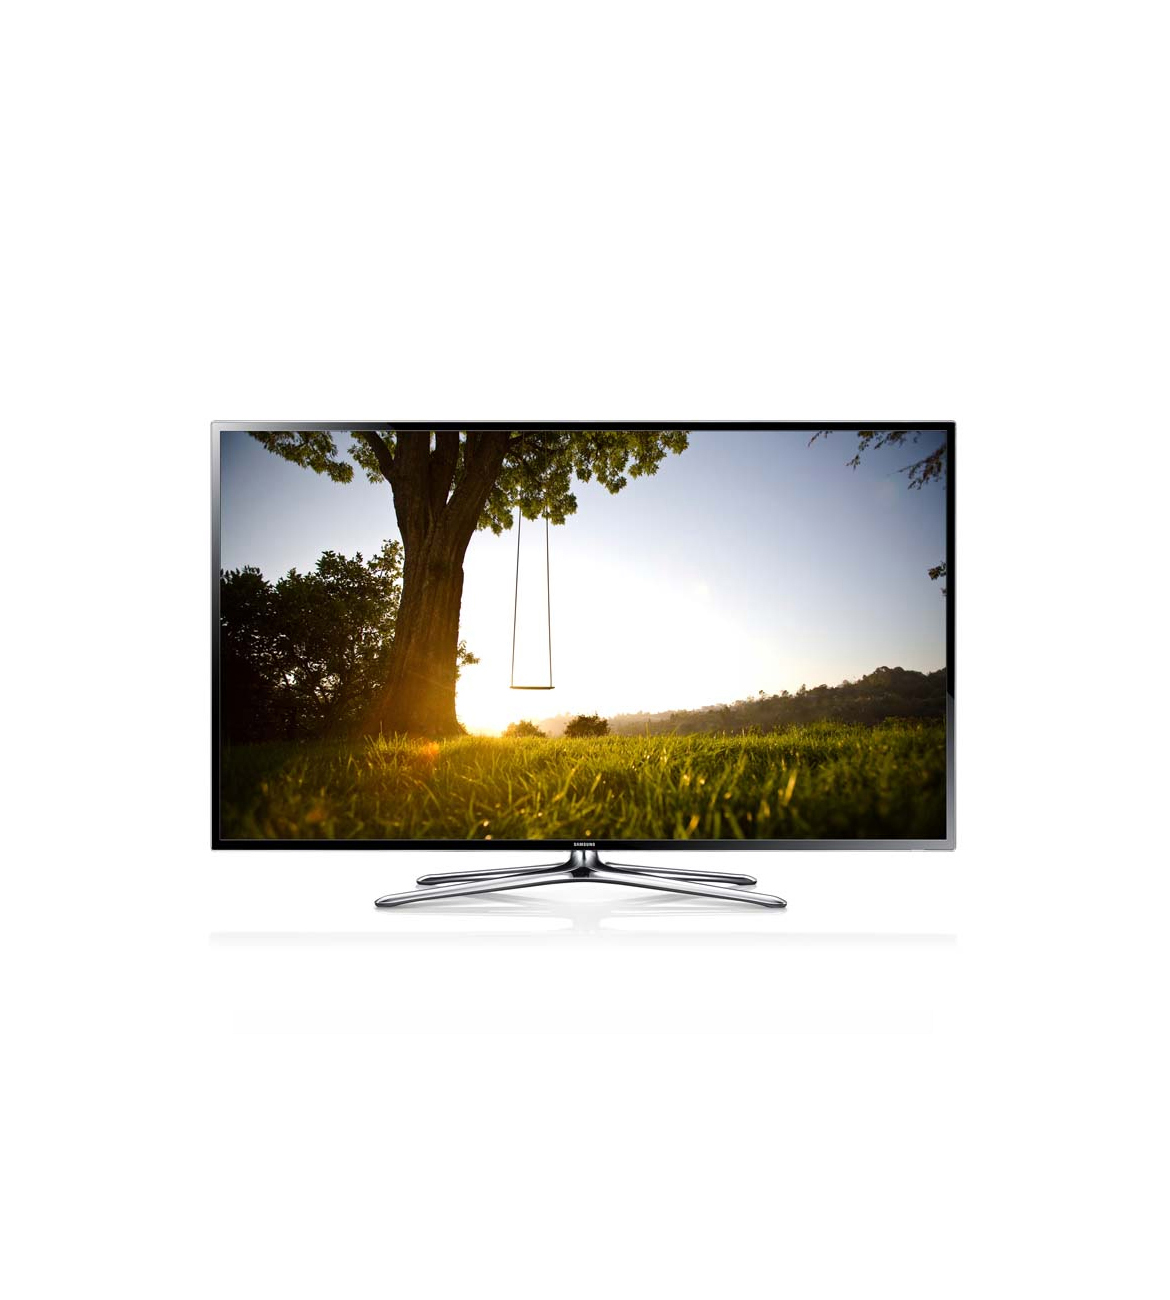 Samsung-40-Inch-F6400-3D-Full-HD-LED-TV-Price-Dubai-AbuDhabi-UAE